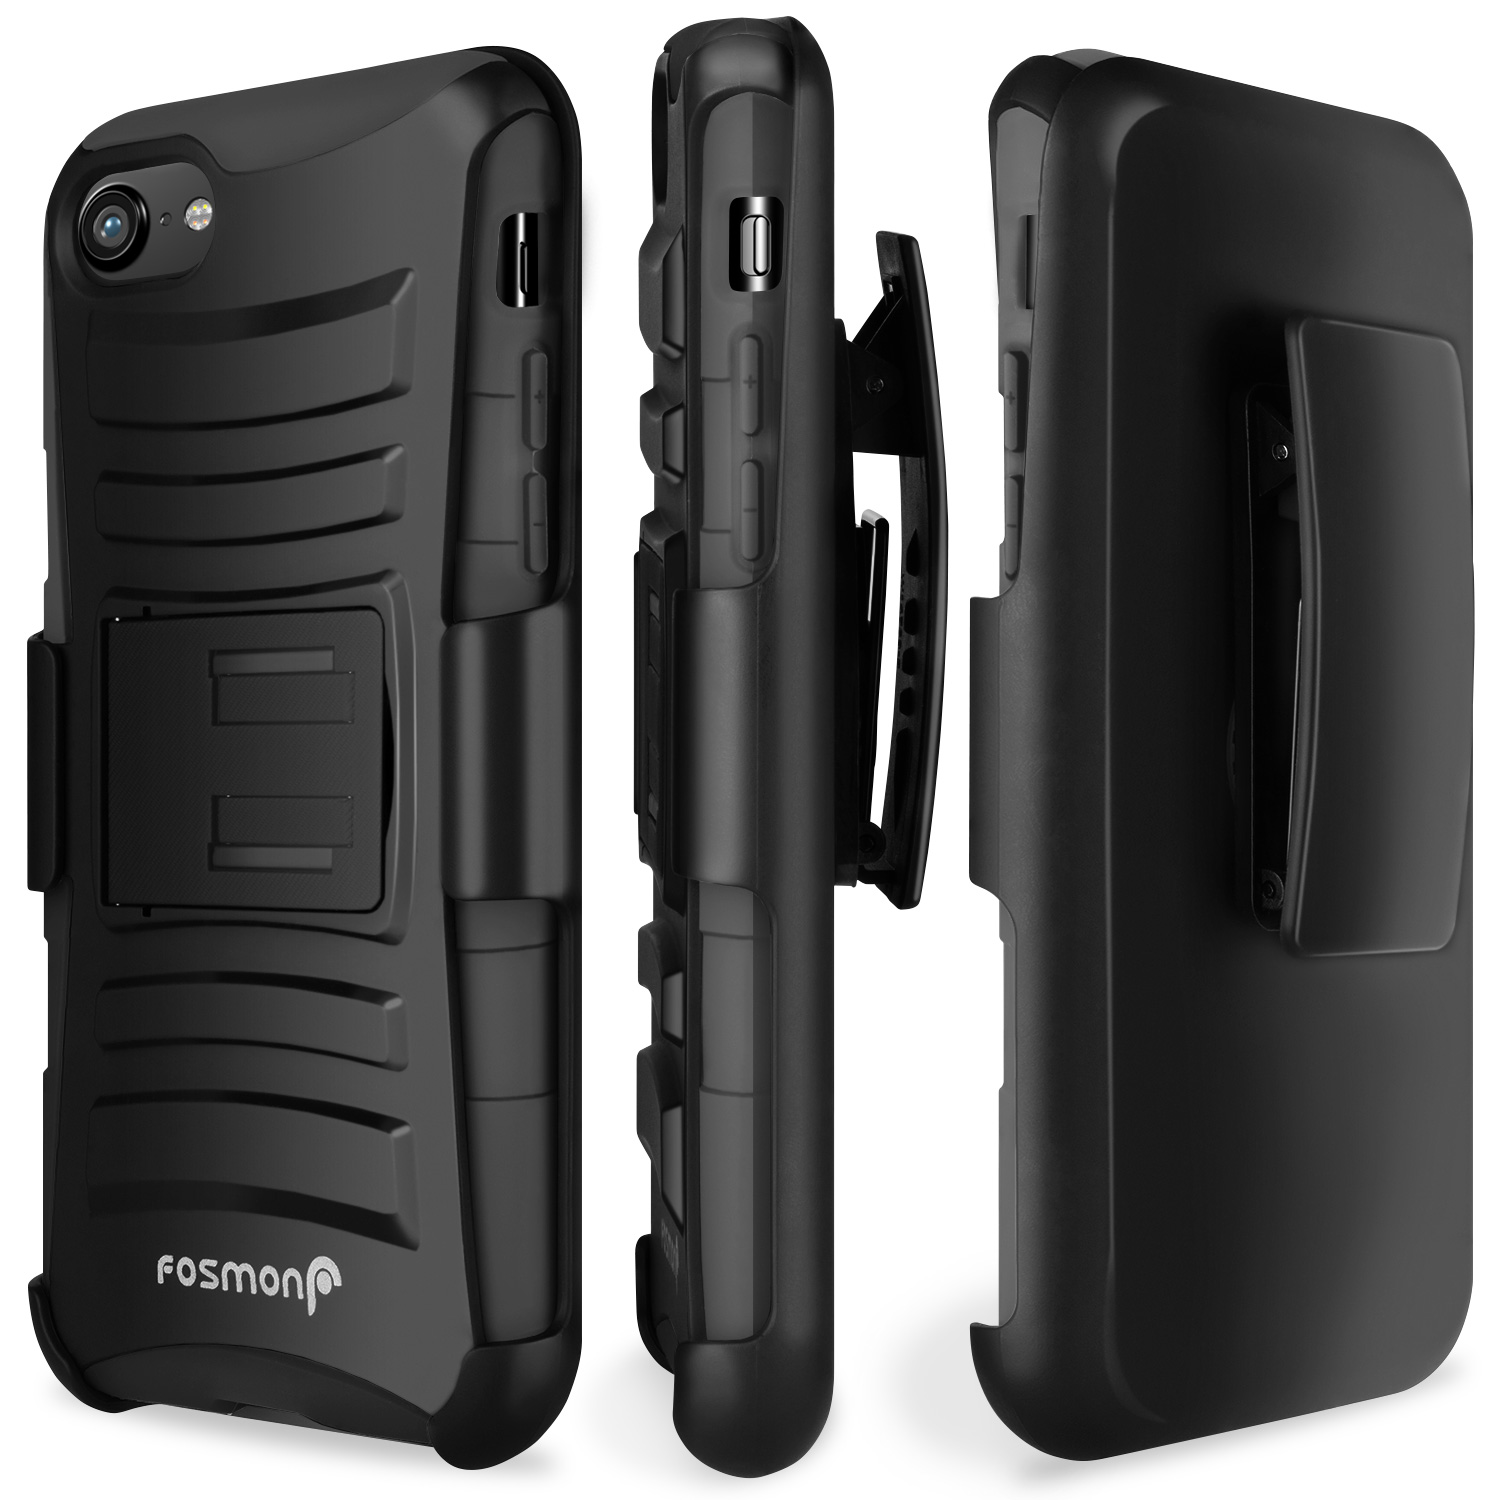 """Fosmon STURDY Shell Holster Case with Kickstand for Apple iPhone 8/7 (4.7"""") - Black/Black"""